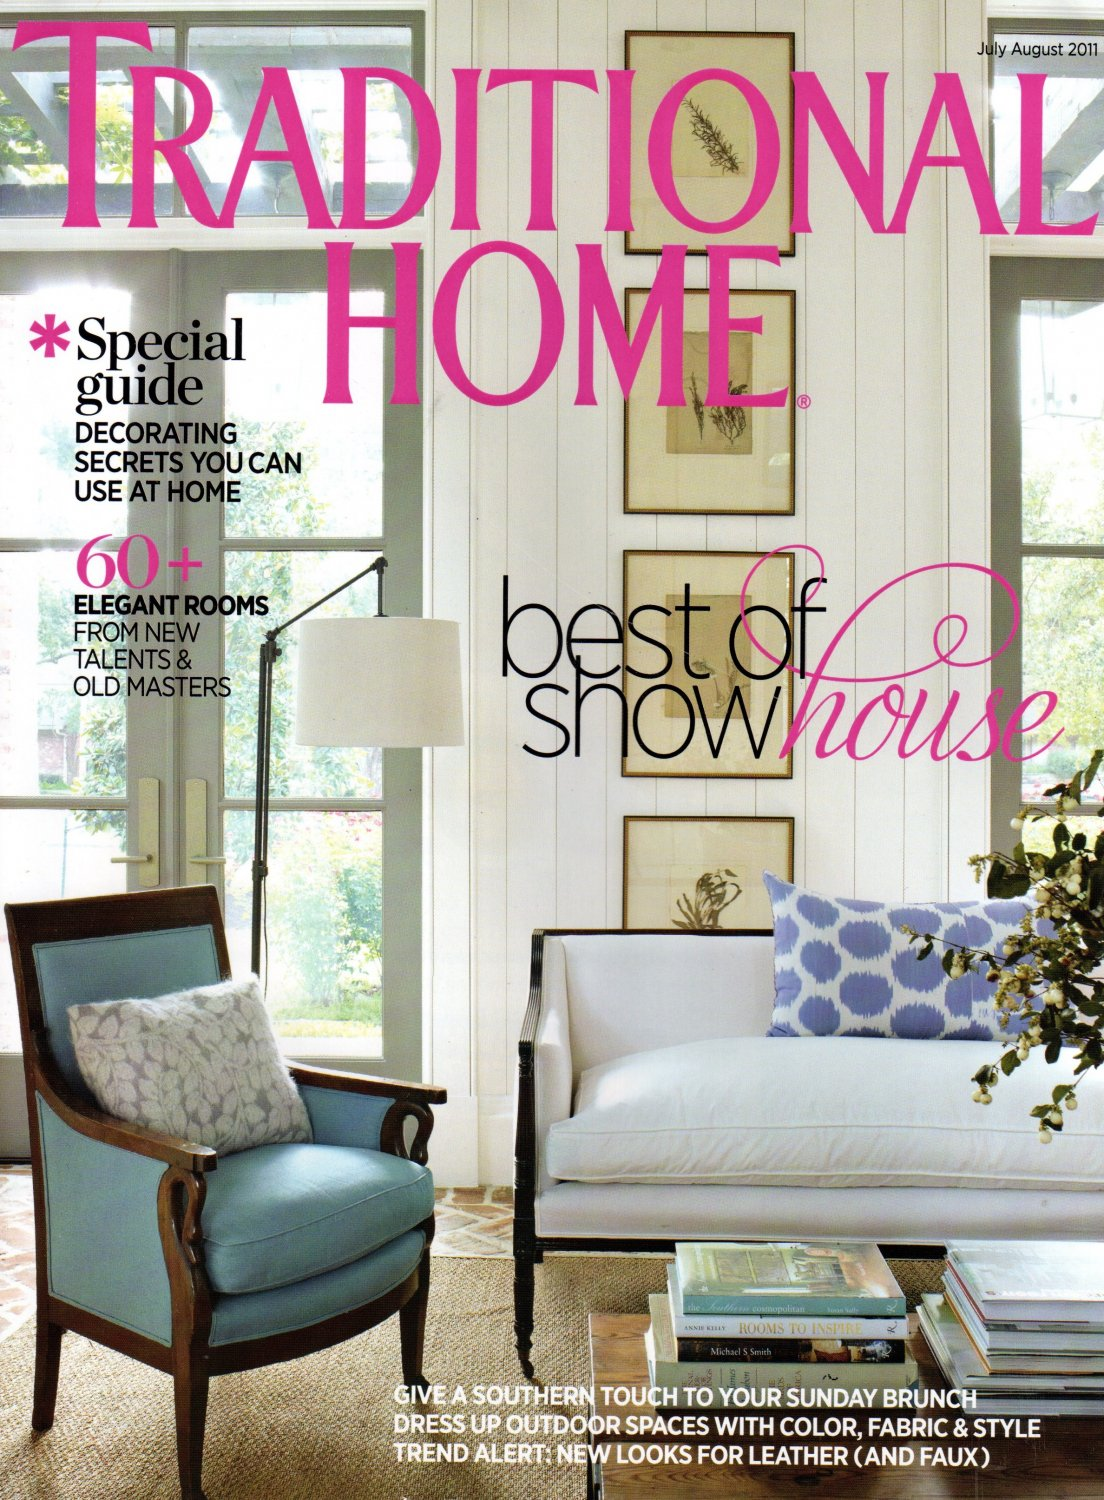 Traditional Home Magazine - July August 2011 Back Issue - Volume 22, Issue 5